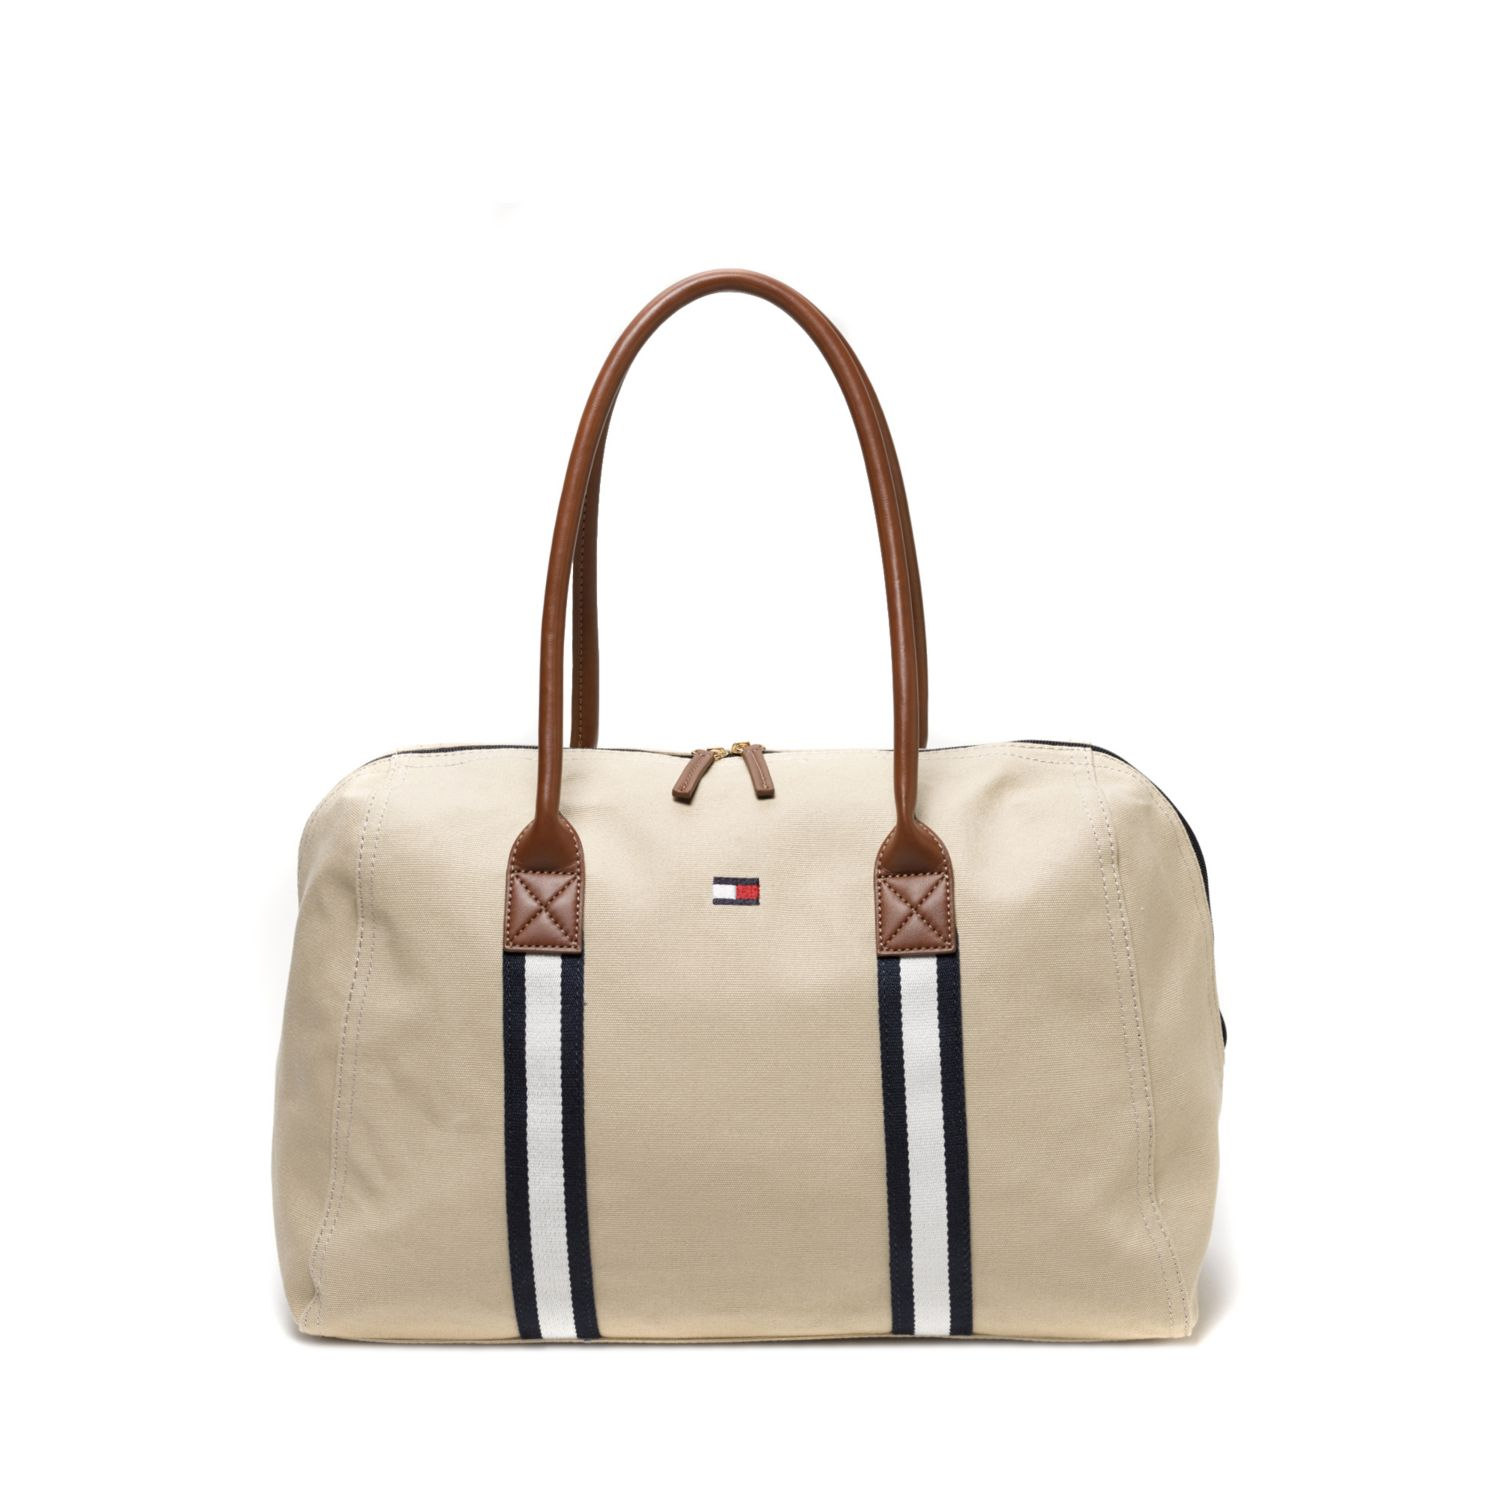 http://usa.tommy.com/shop/en/thb2cus/outlet-accessories/outlet-womens-accessories/6930646?Color=TIDEWATER KHAKI